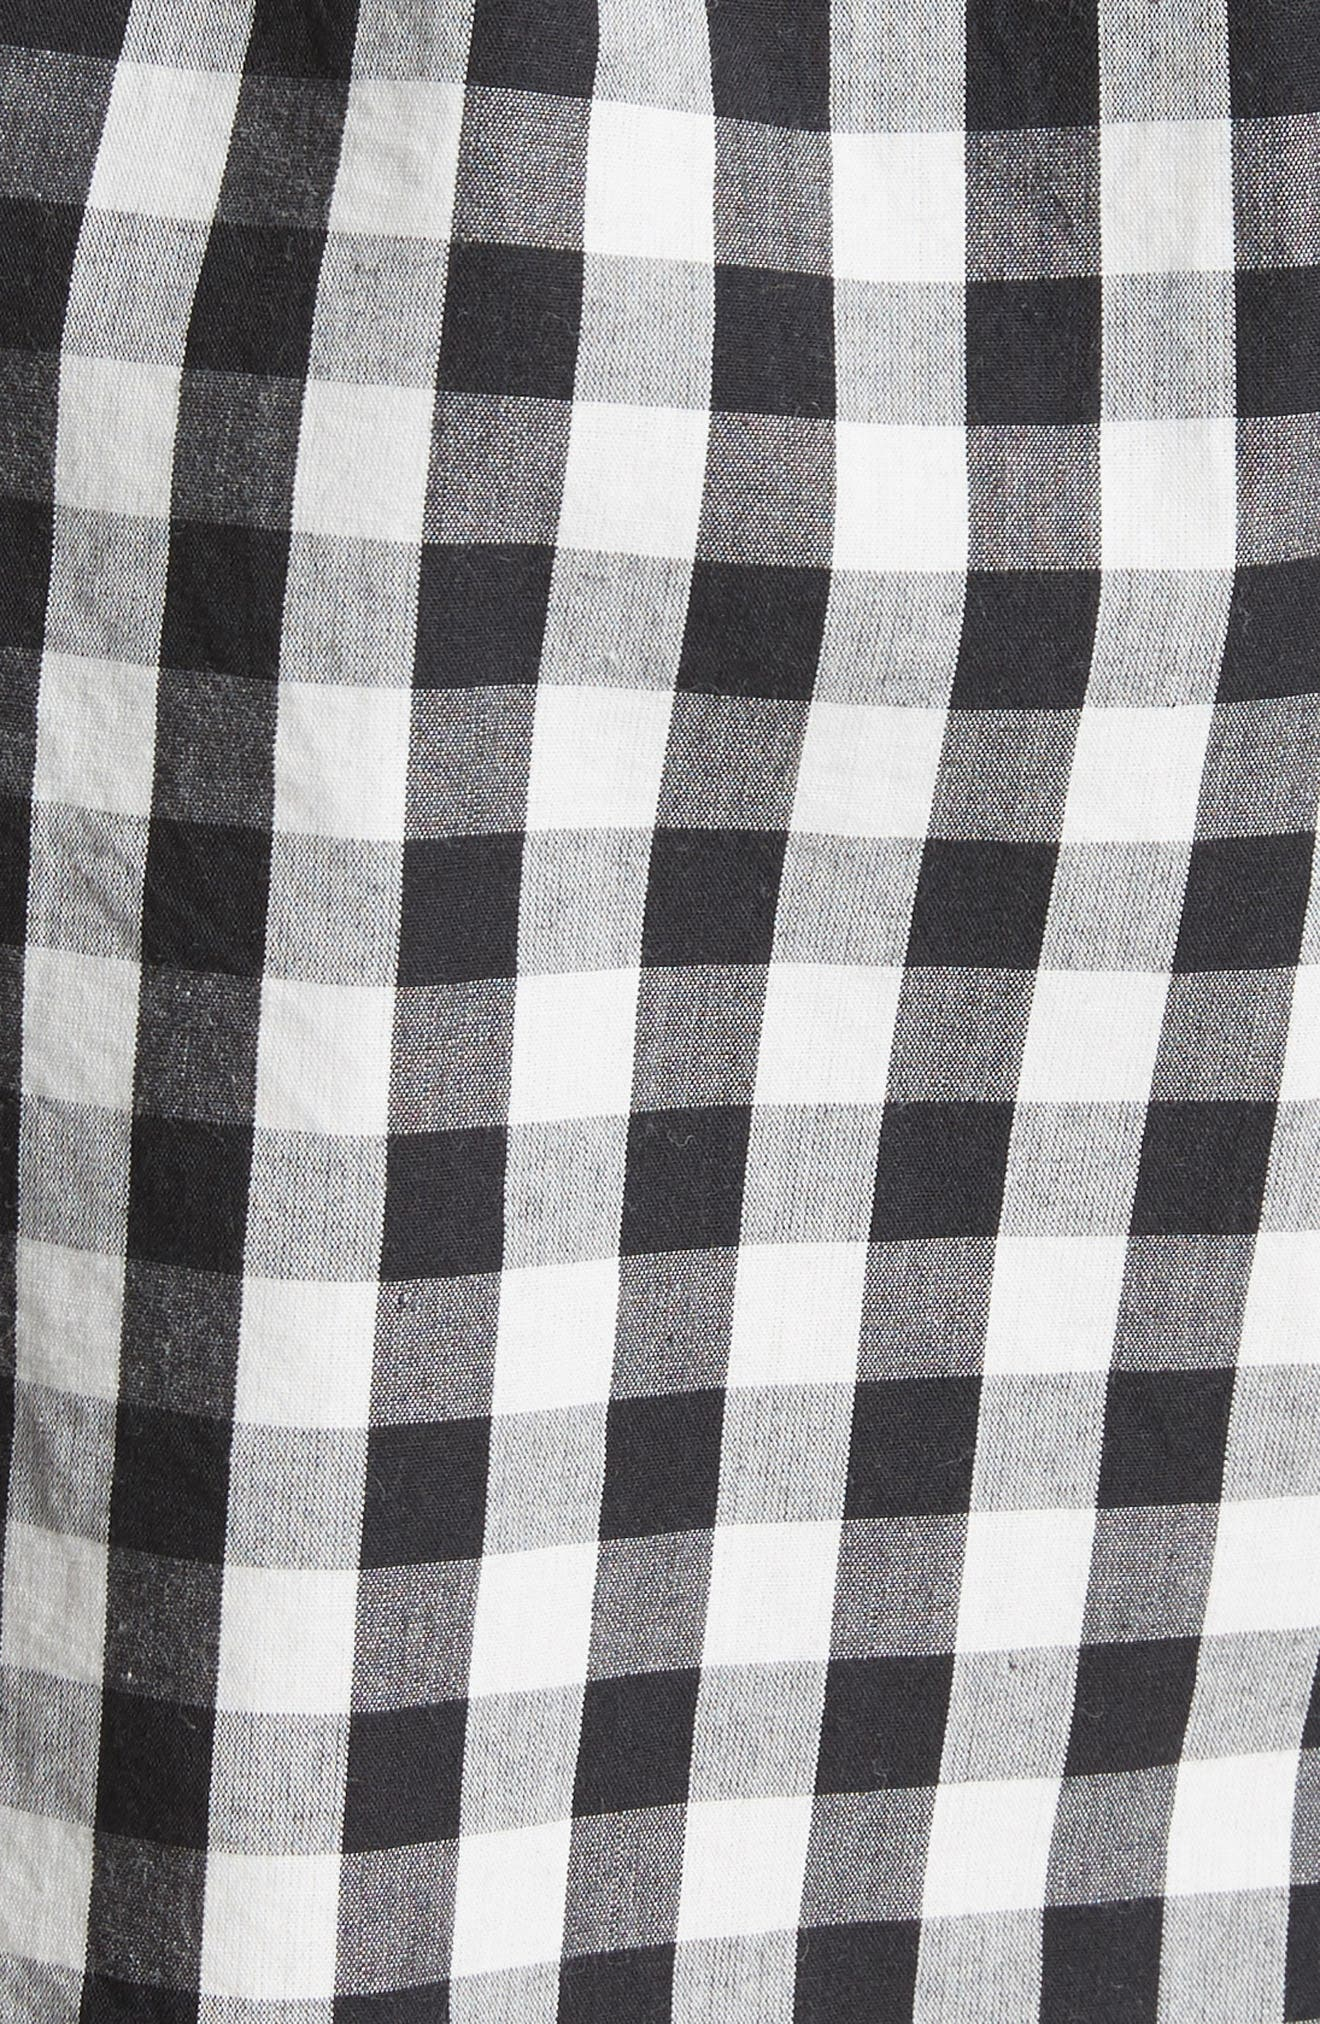 JOIE,                             Cleantha Gingham Cotton Shorts,                             Alternate thumbnail 5, color,                             001